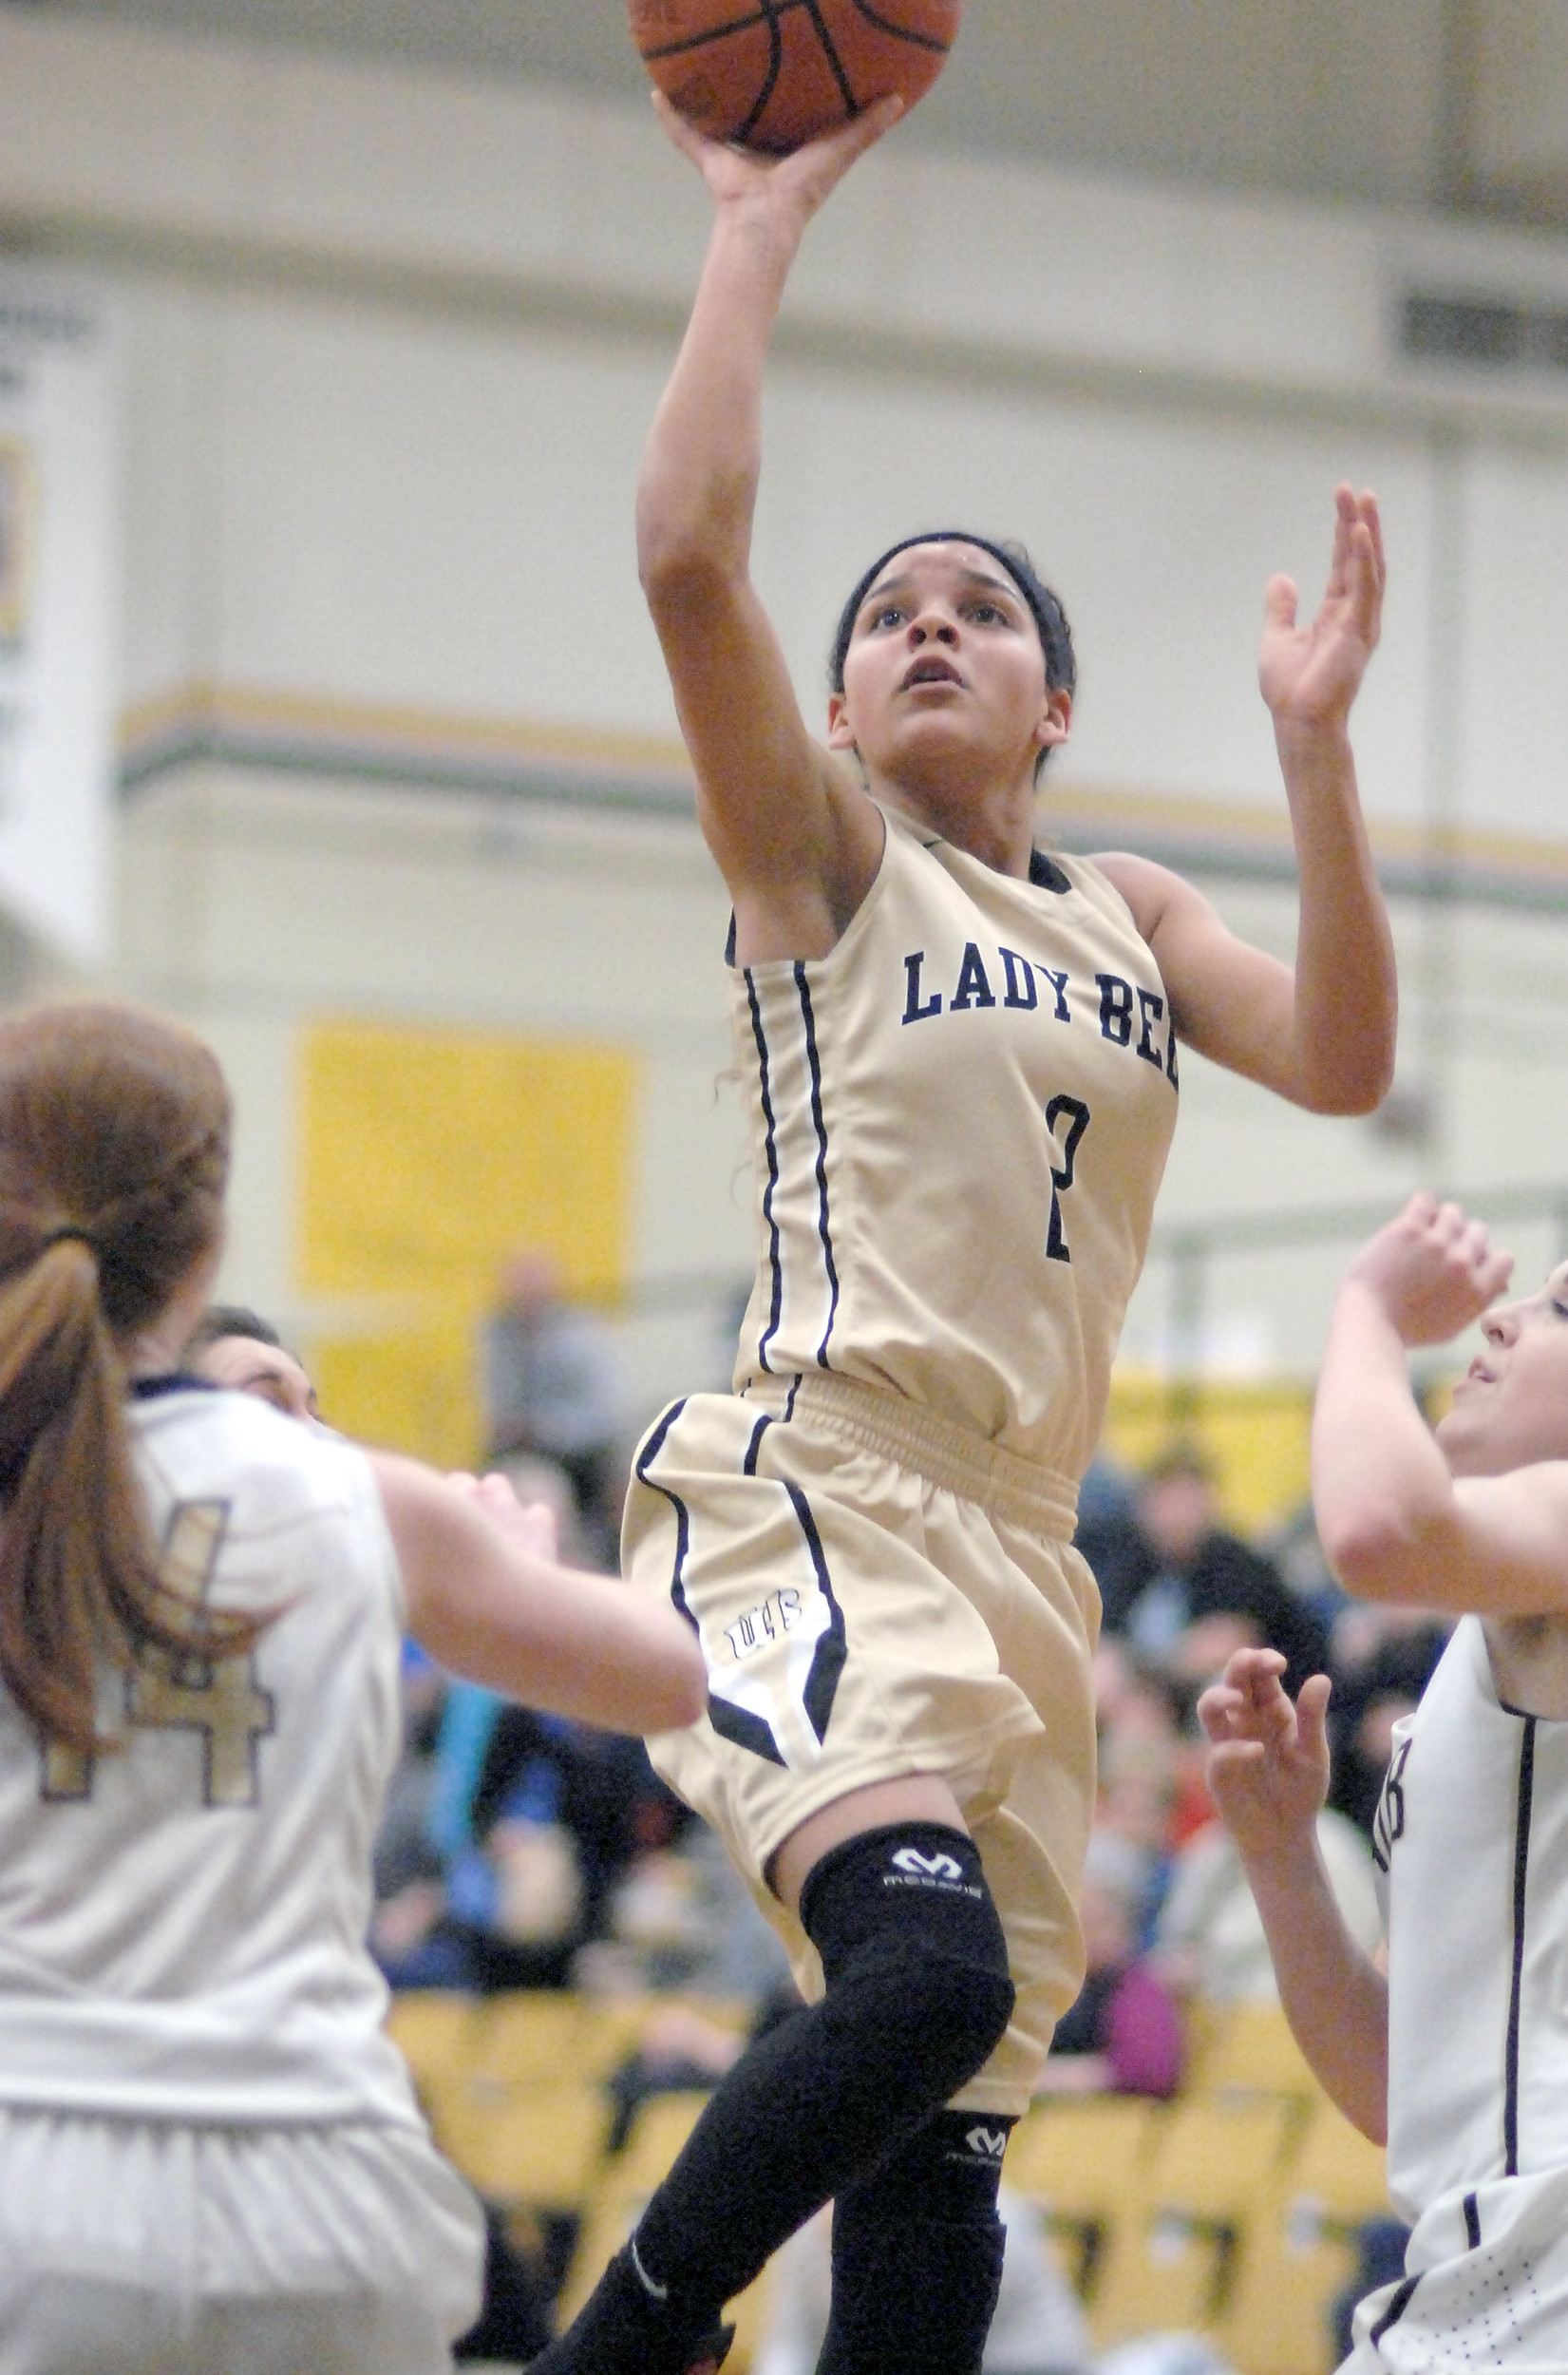 Upperman's Akira Levy led the Lady Bees on Monday with 27 points ...